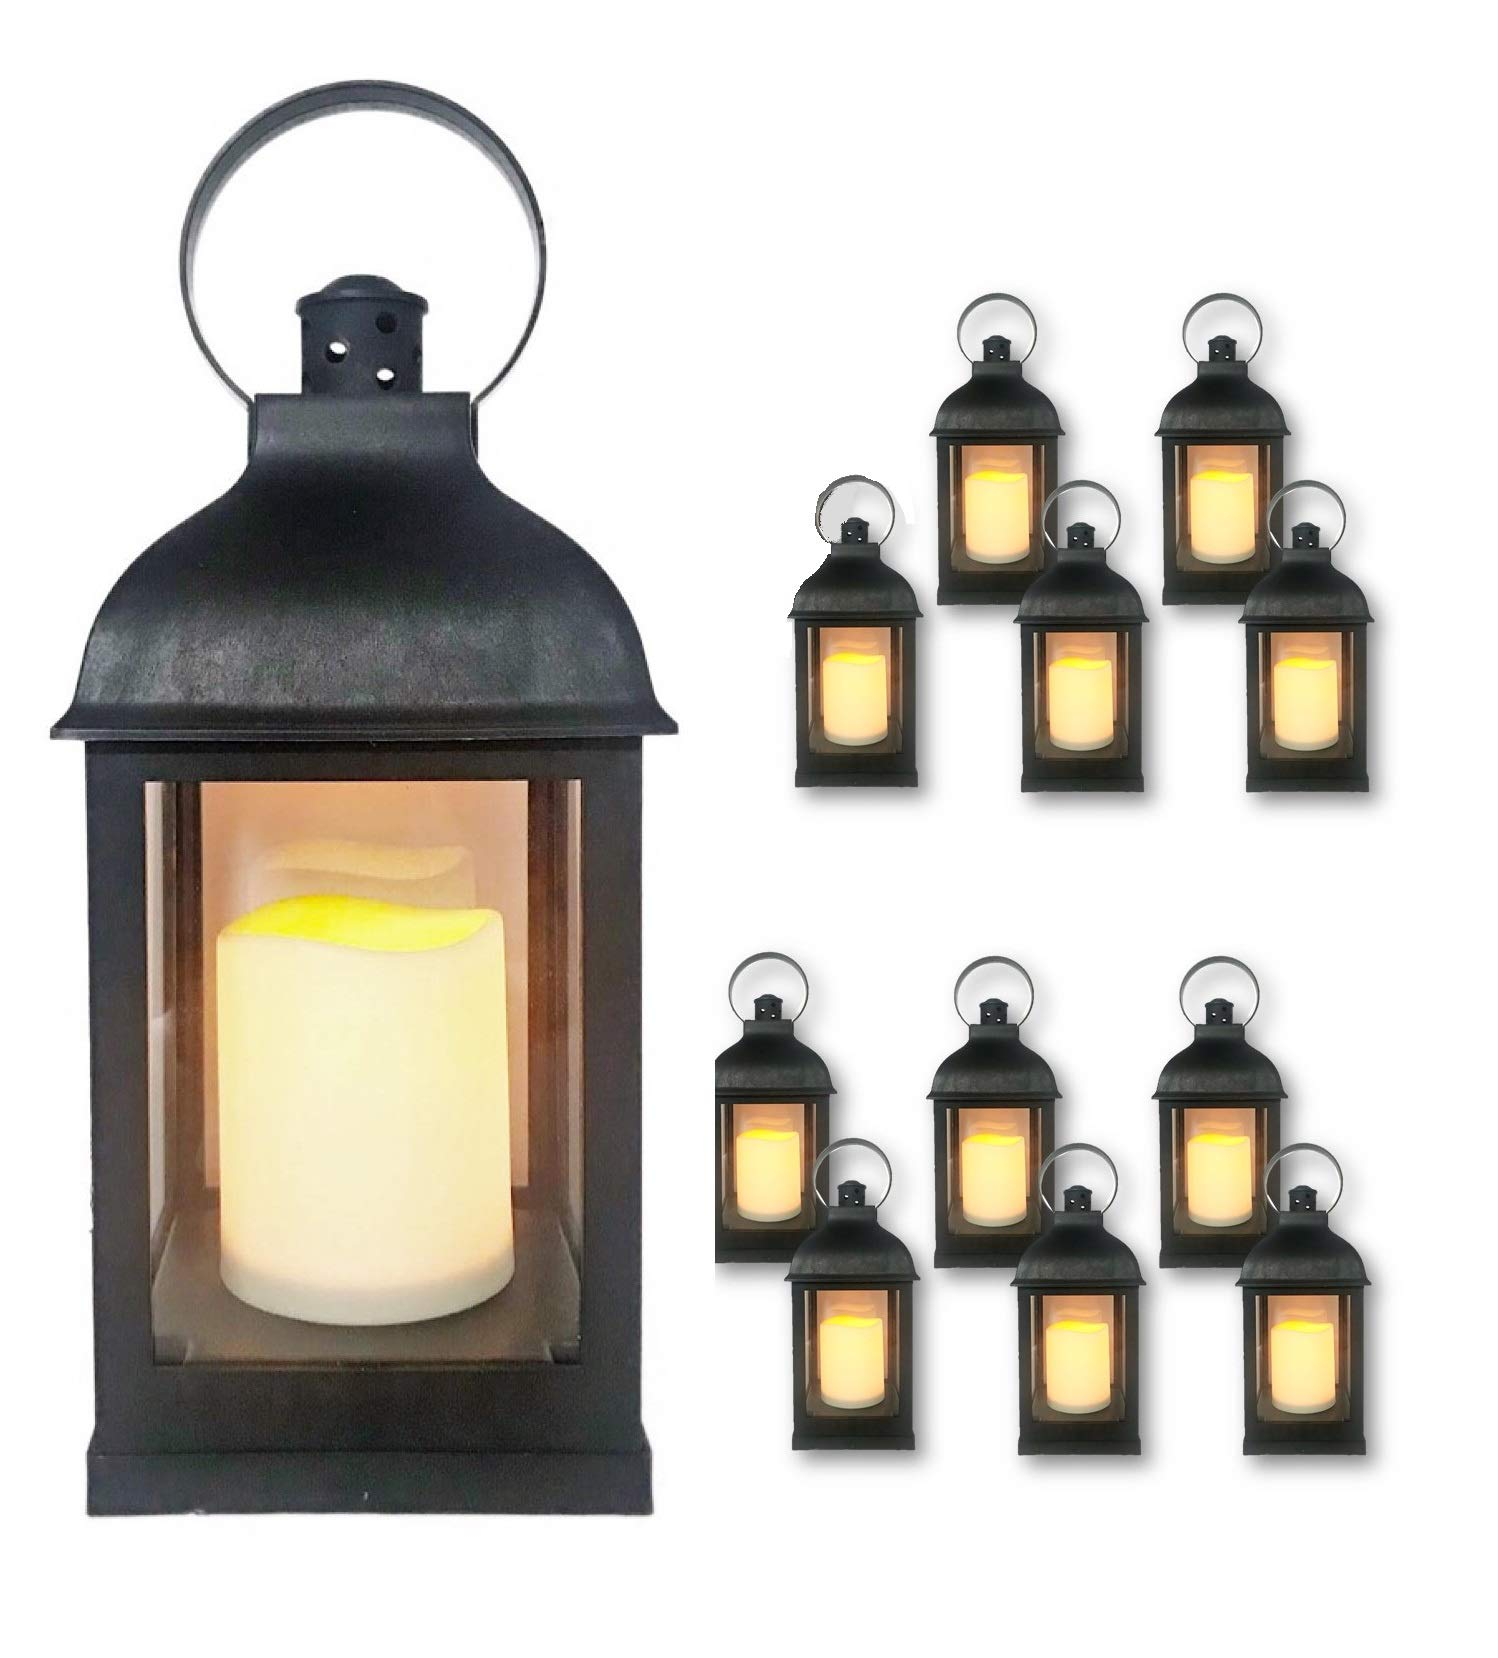 Just In Time For Winter {12 Pc Set} 10'' Decorative Lanterns with Flameless LED Lighted Candle, 5 Hr Timer, Antique Look Indoor Outdoor Home, Garden, Weddings - Includes 1 Bonus String Lights! Black. by THE NIFTY NOOK